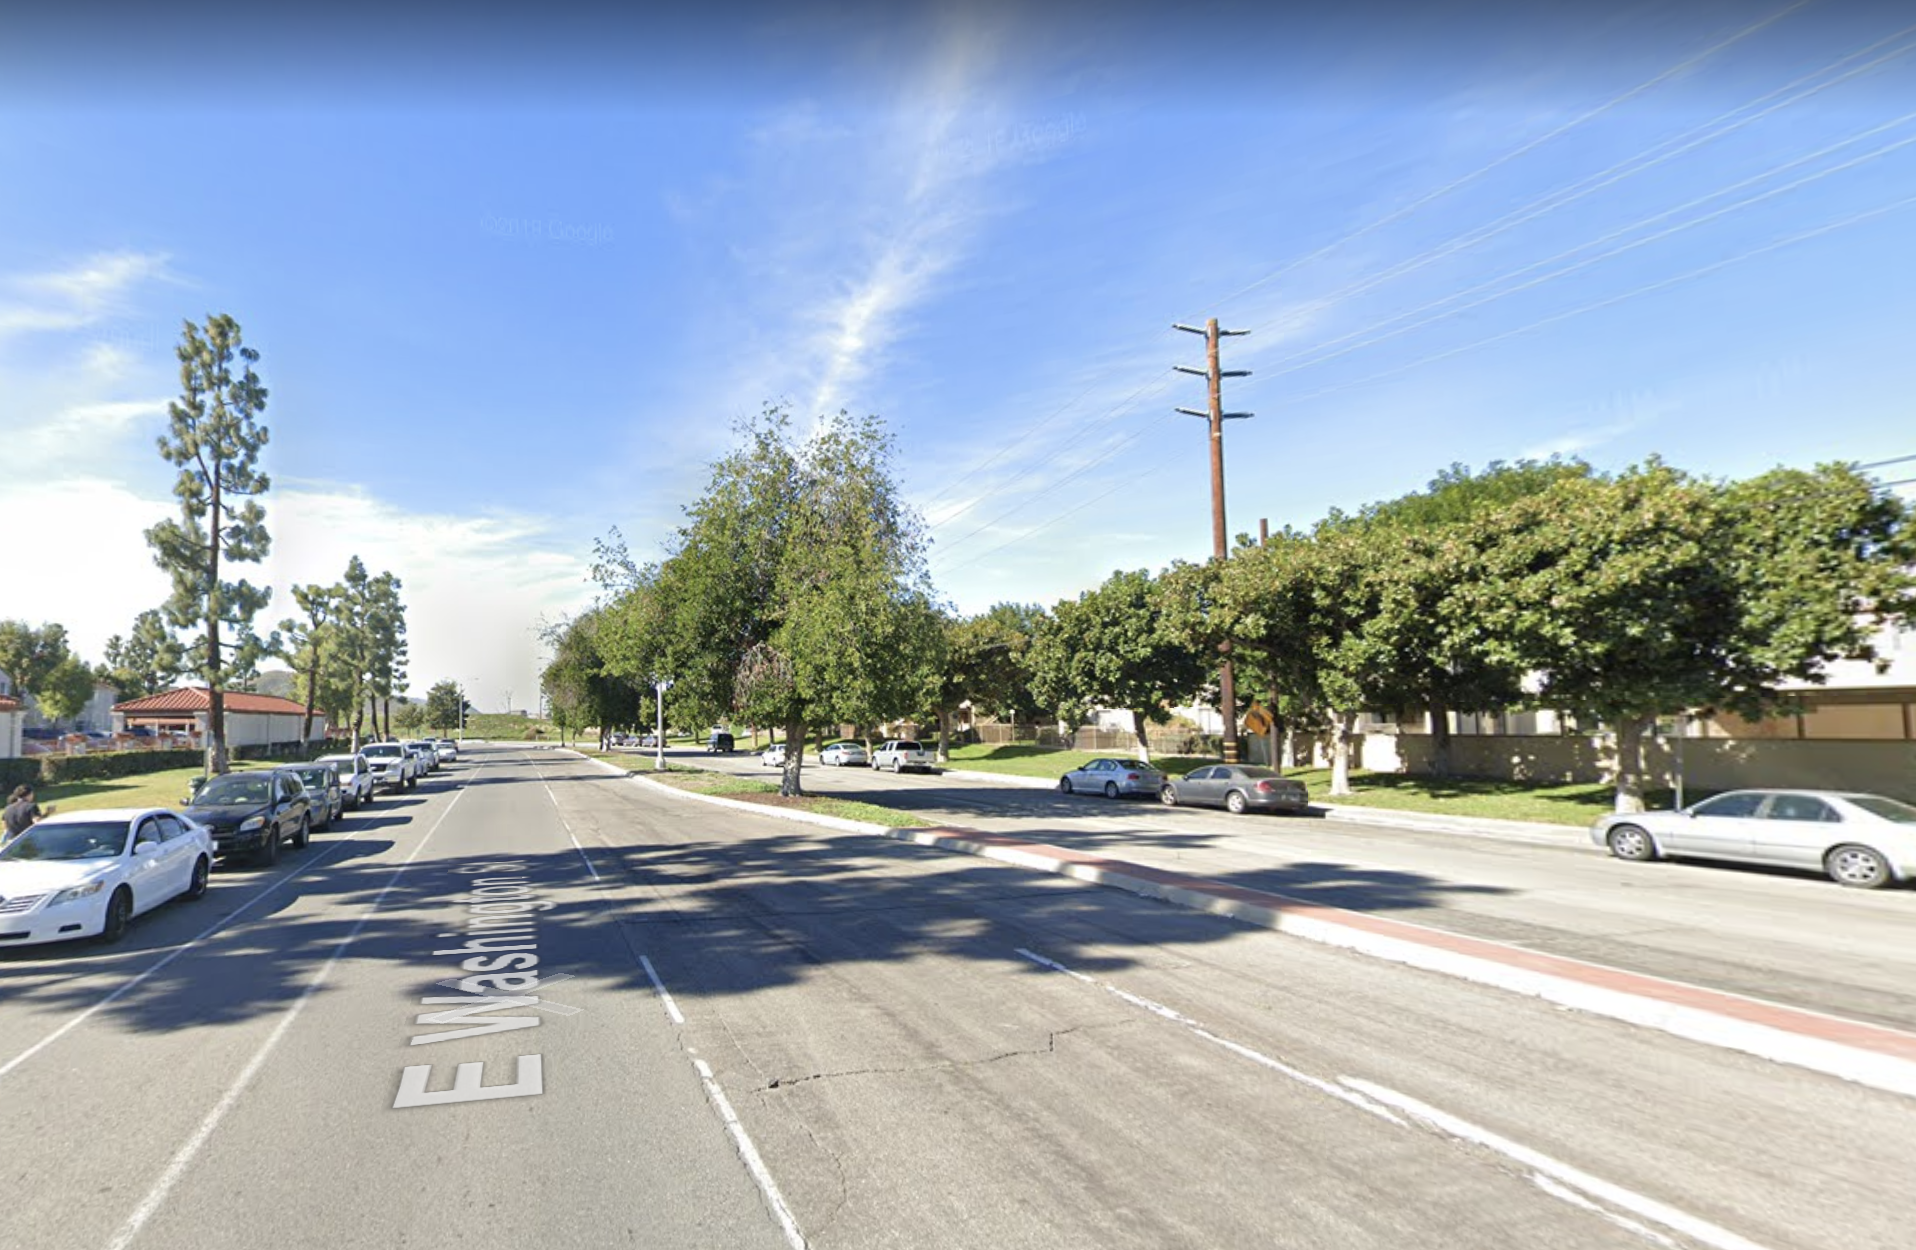 The 800 block of East Washington Street in Colton appears in this image from Google Maps.